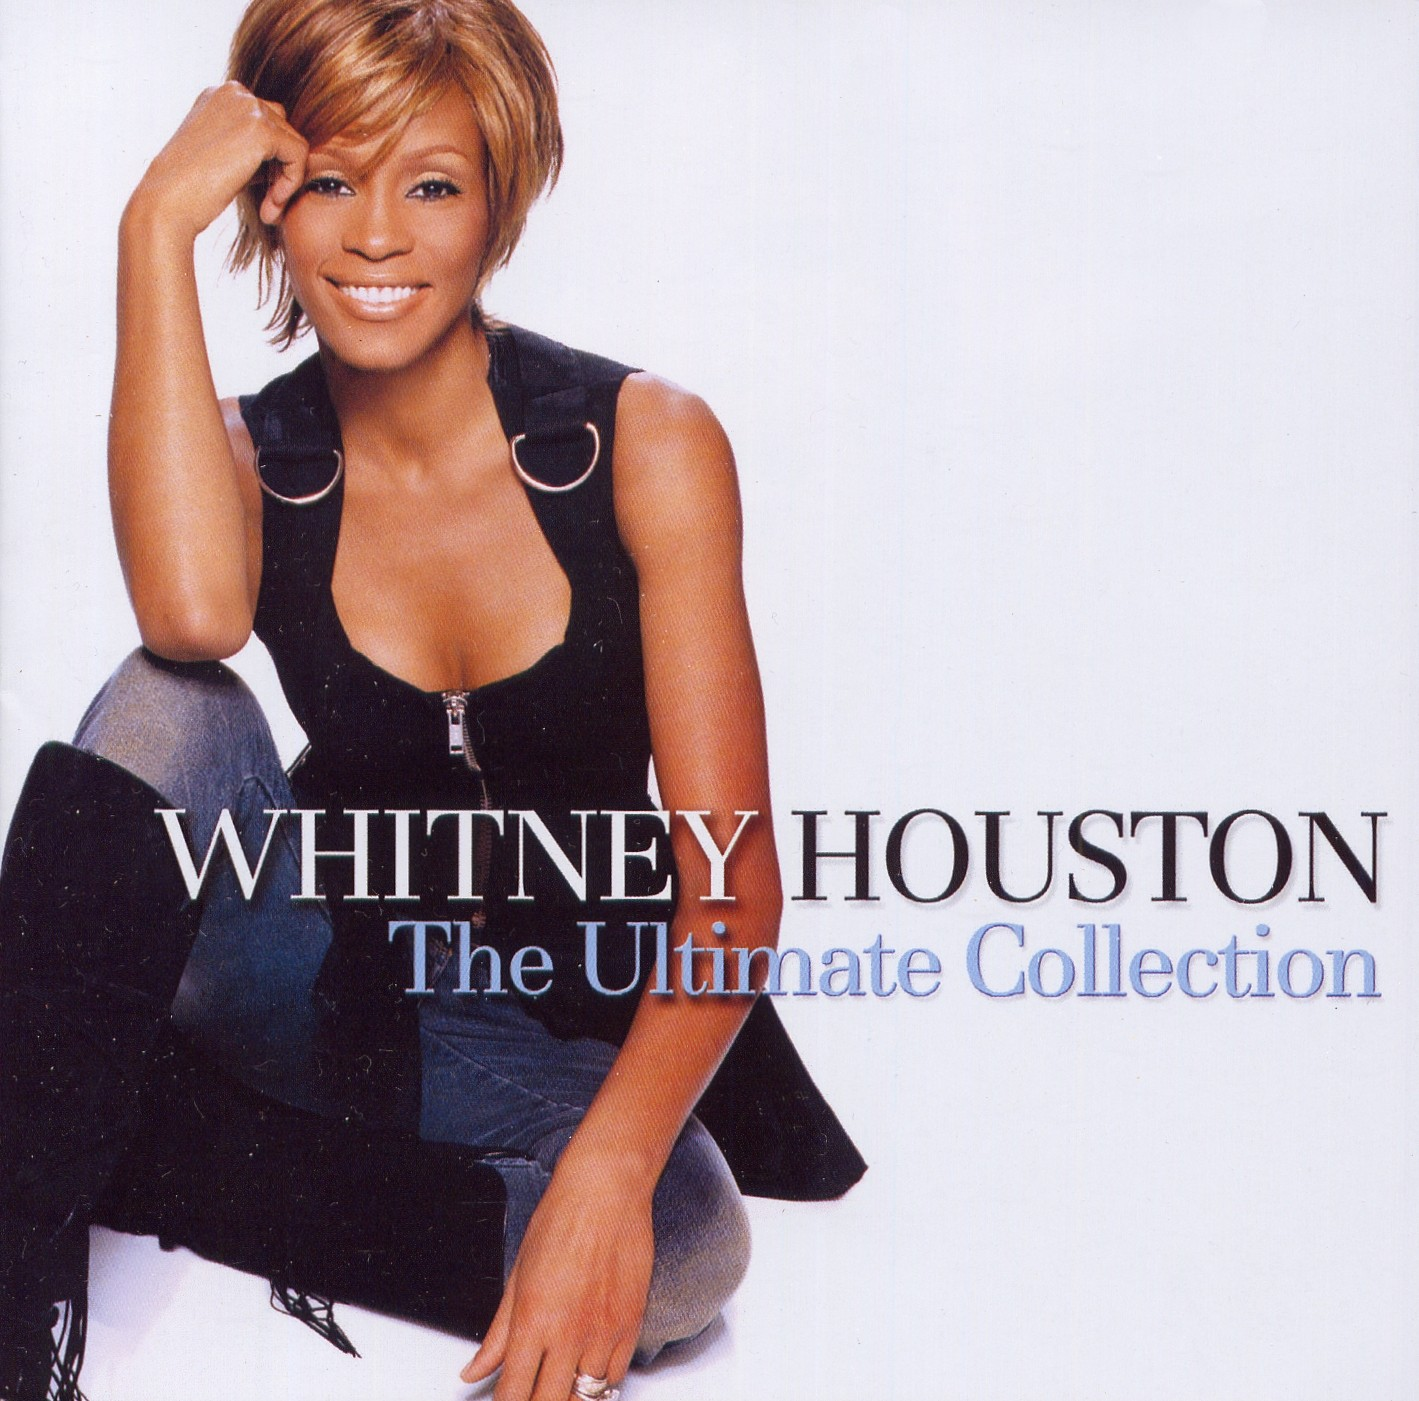 http://2.bp.blogspot.com/_p5rKvk3o25k/SckC47Ln3TI/AAAAAAAAAyw/iIomvnbwgYY/s1600/Whitney+Houston+-+The+Ultimate+Collection+-+Front.jpg